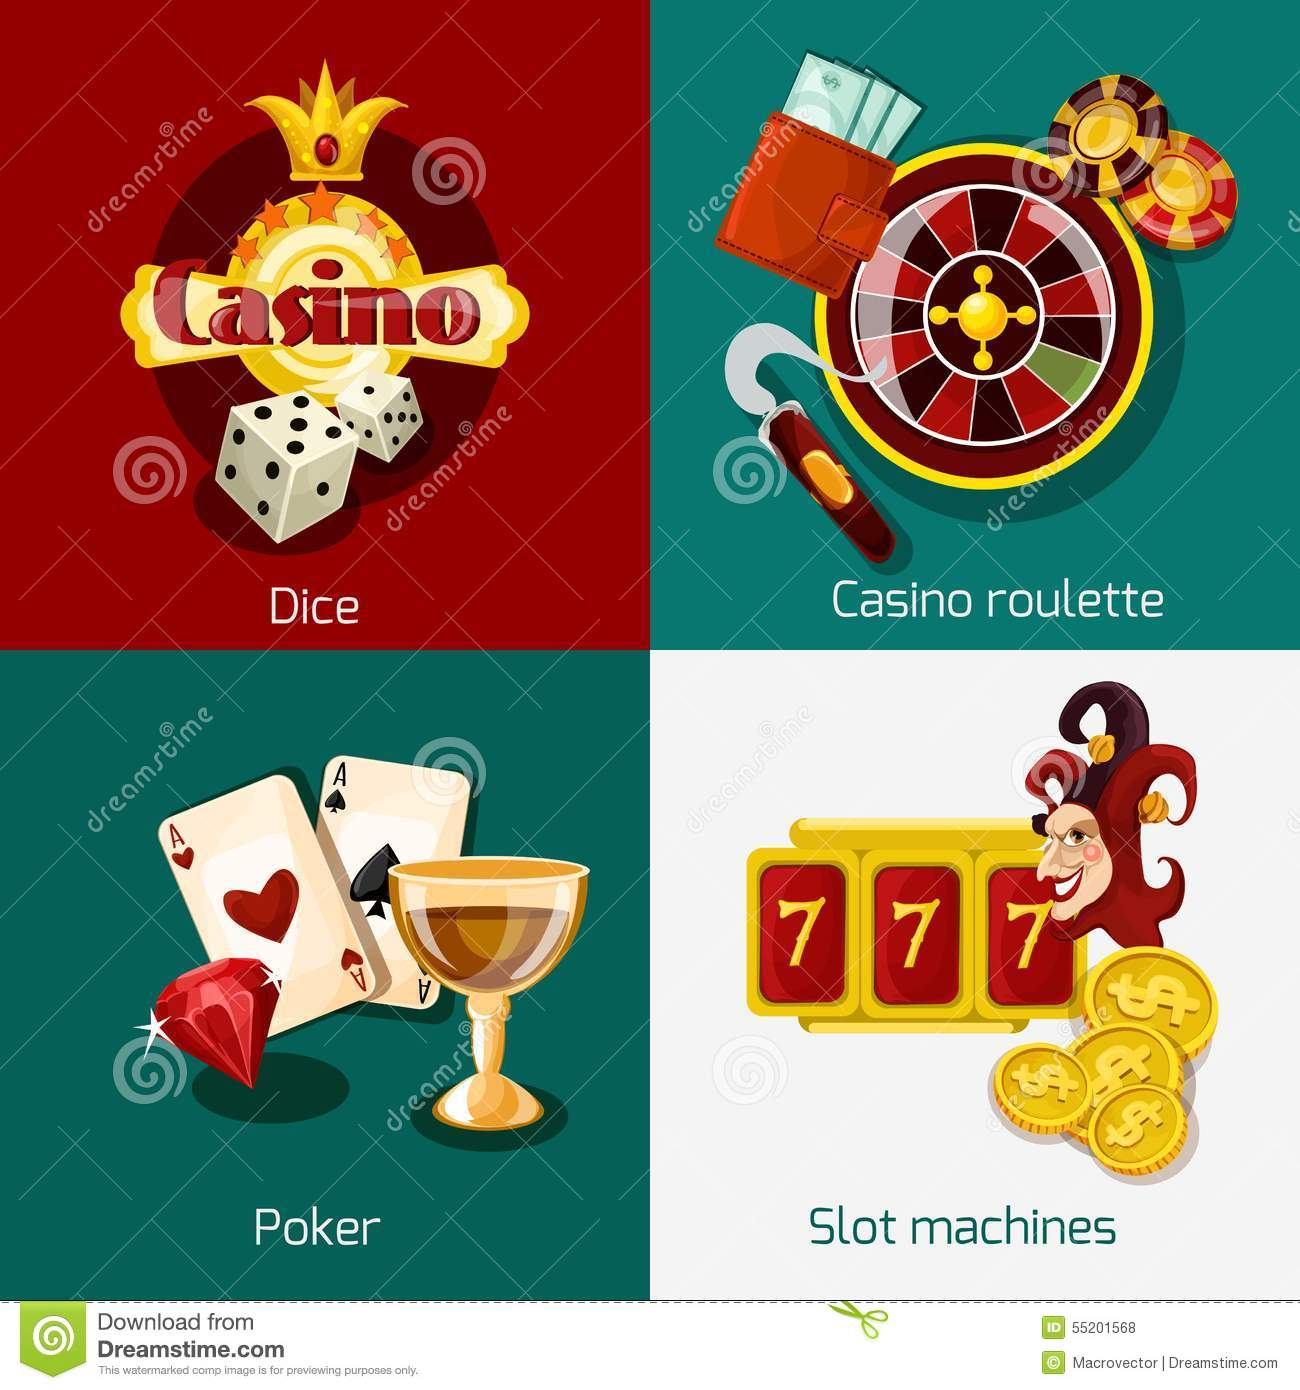 Texas holdem no limit wiki